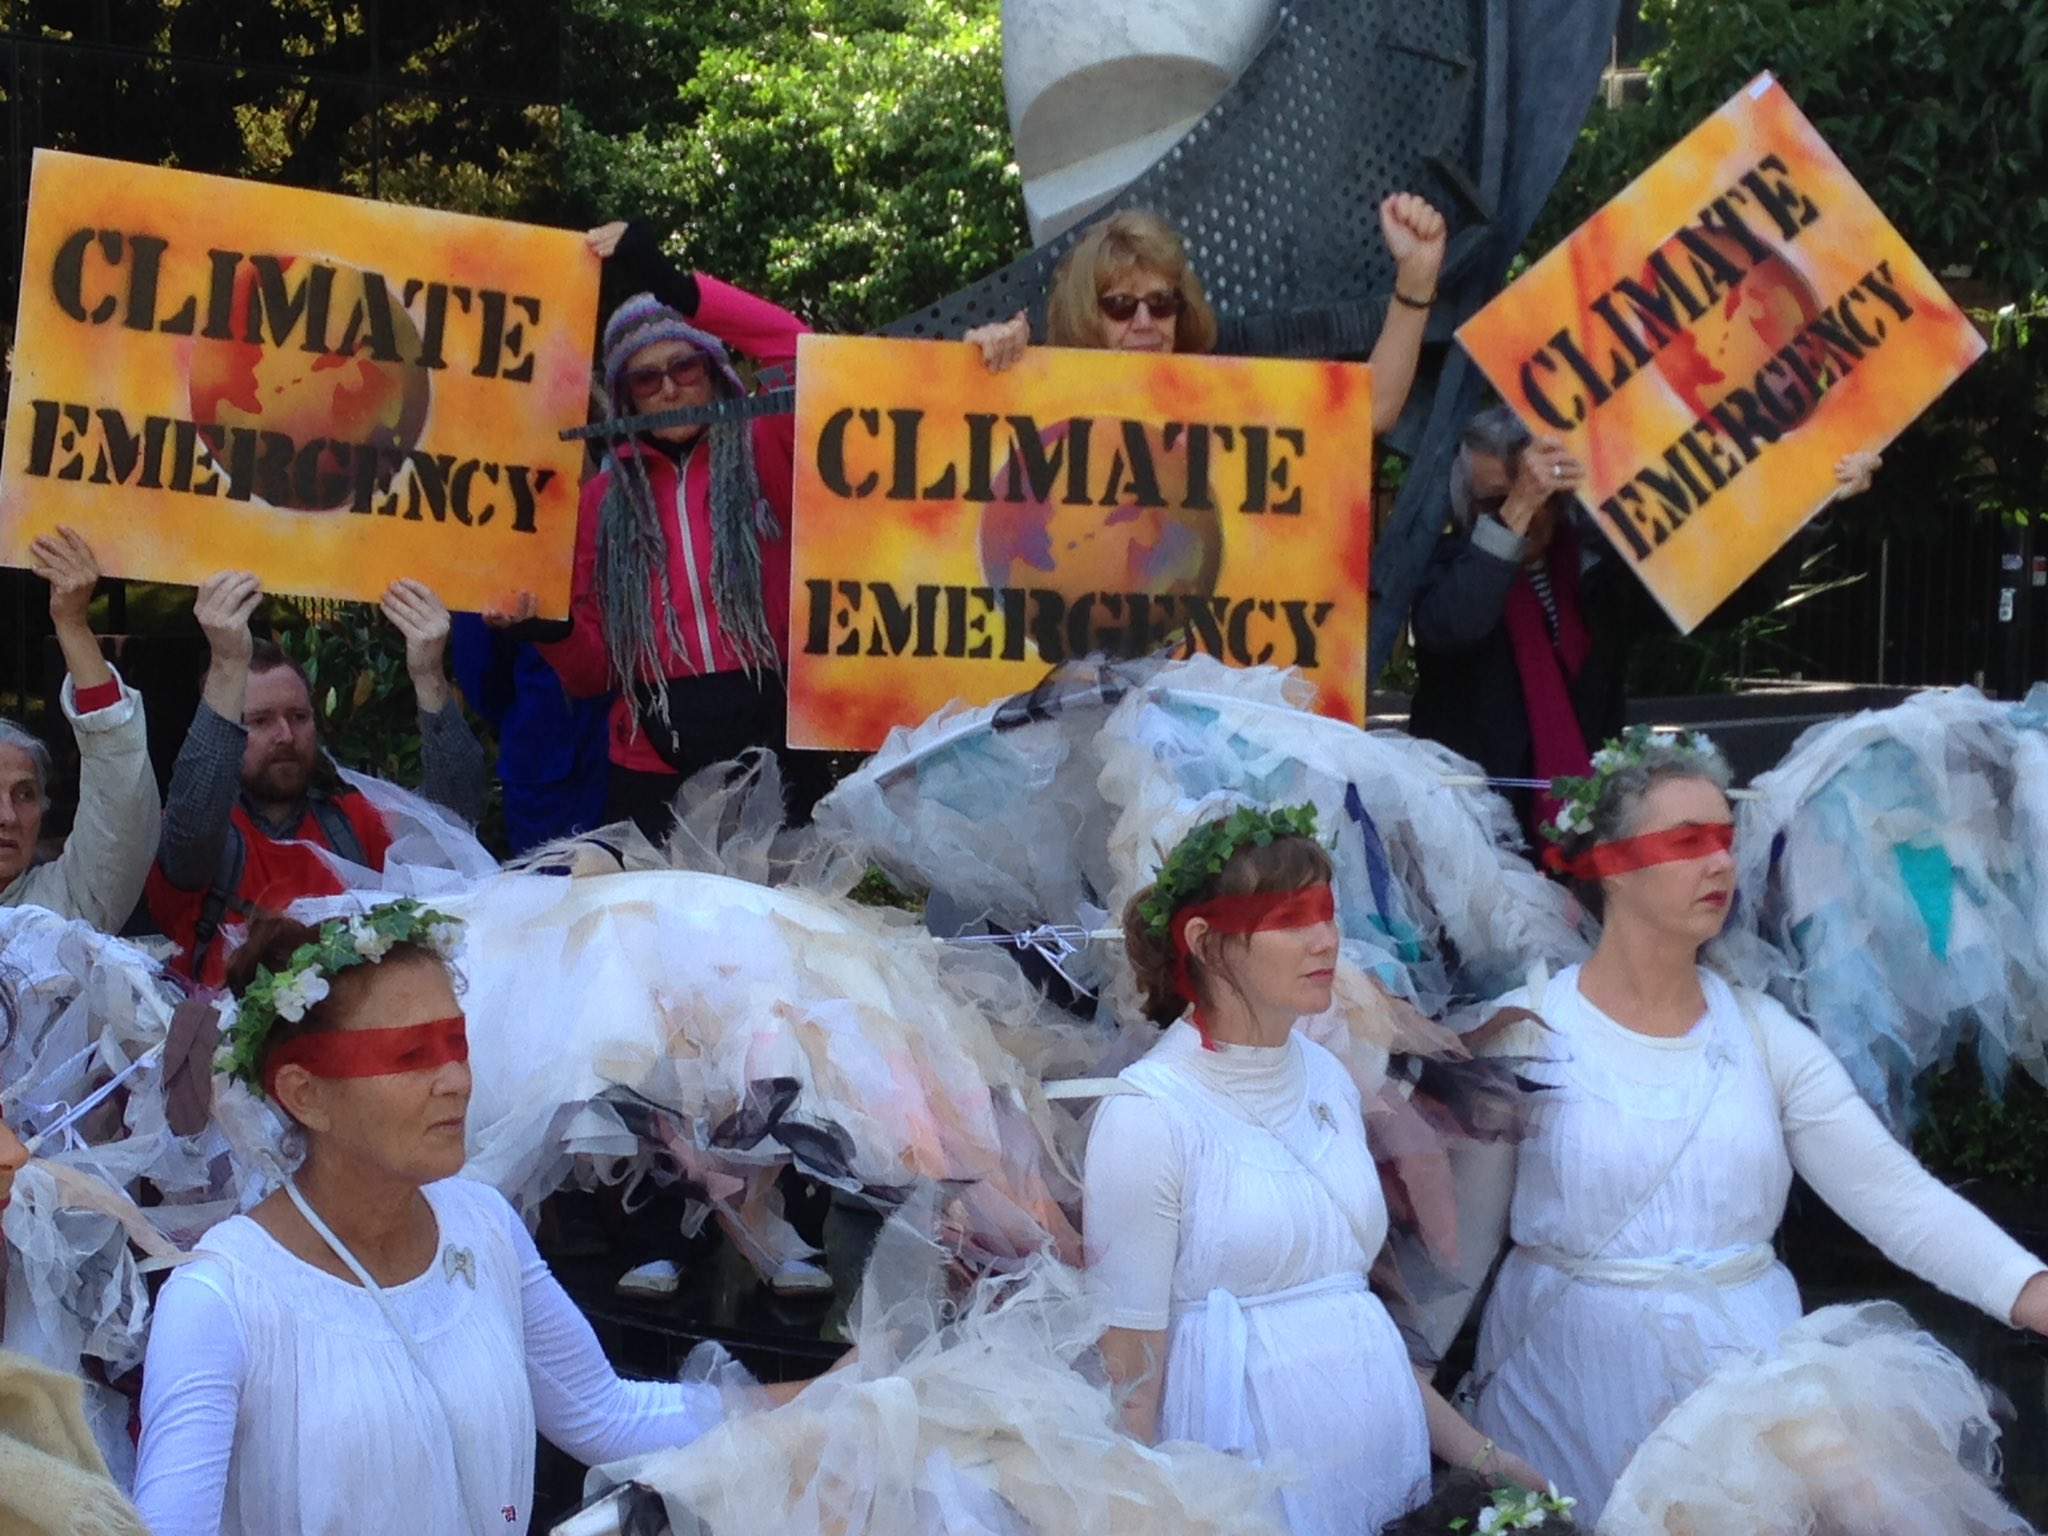 solidarity with United States activists against Trump regime #climate denial policies. @ClimateGuardia outside US consulate #Melbourne https://t.co/P5OR07KDgW